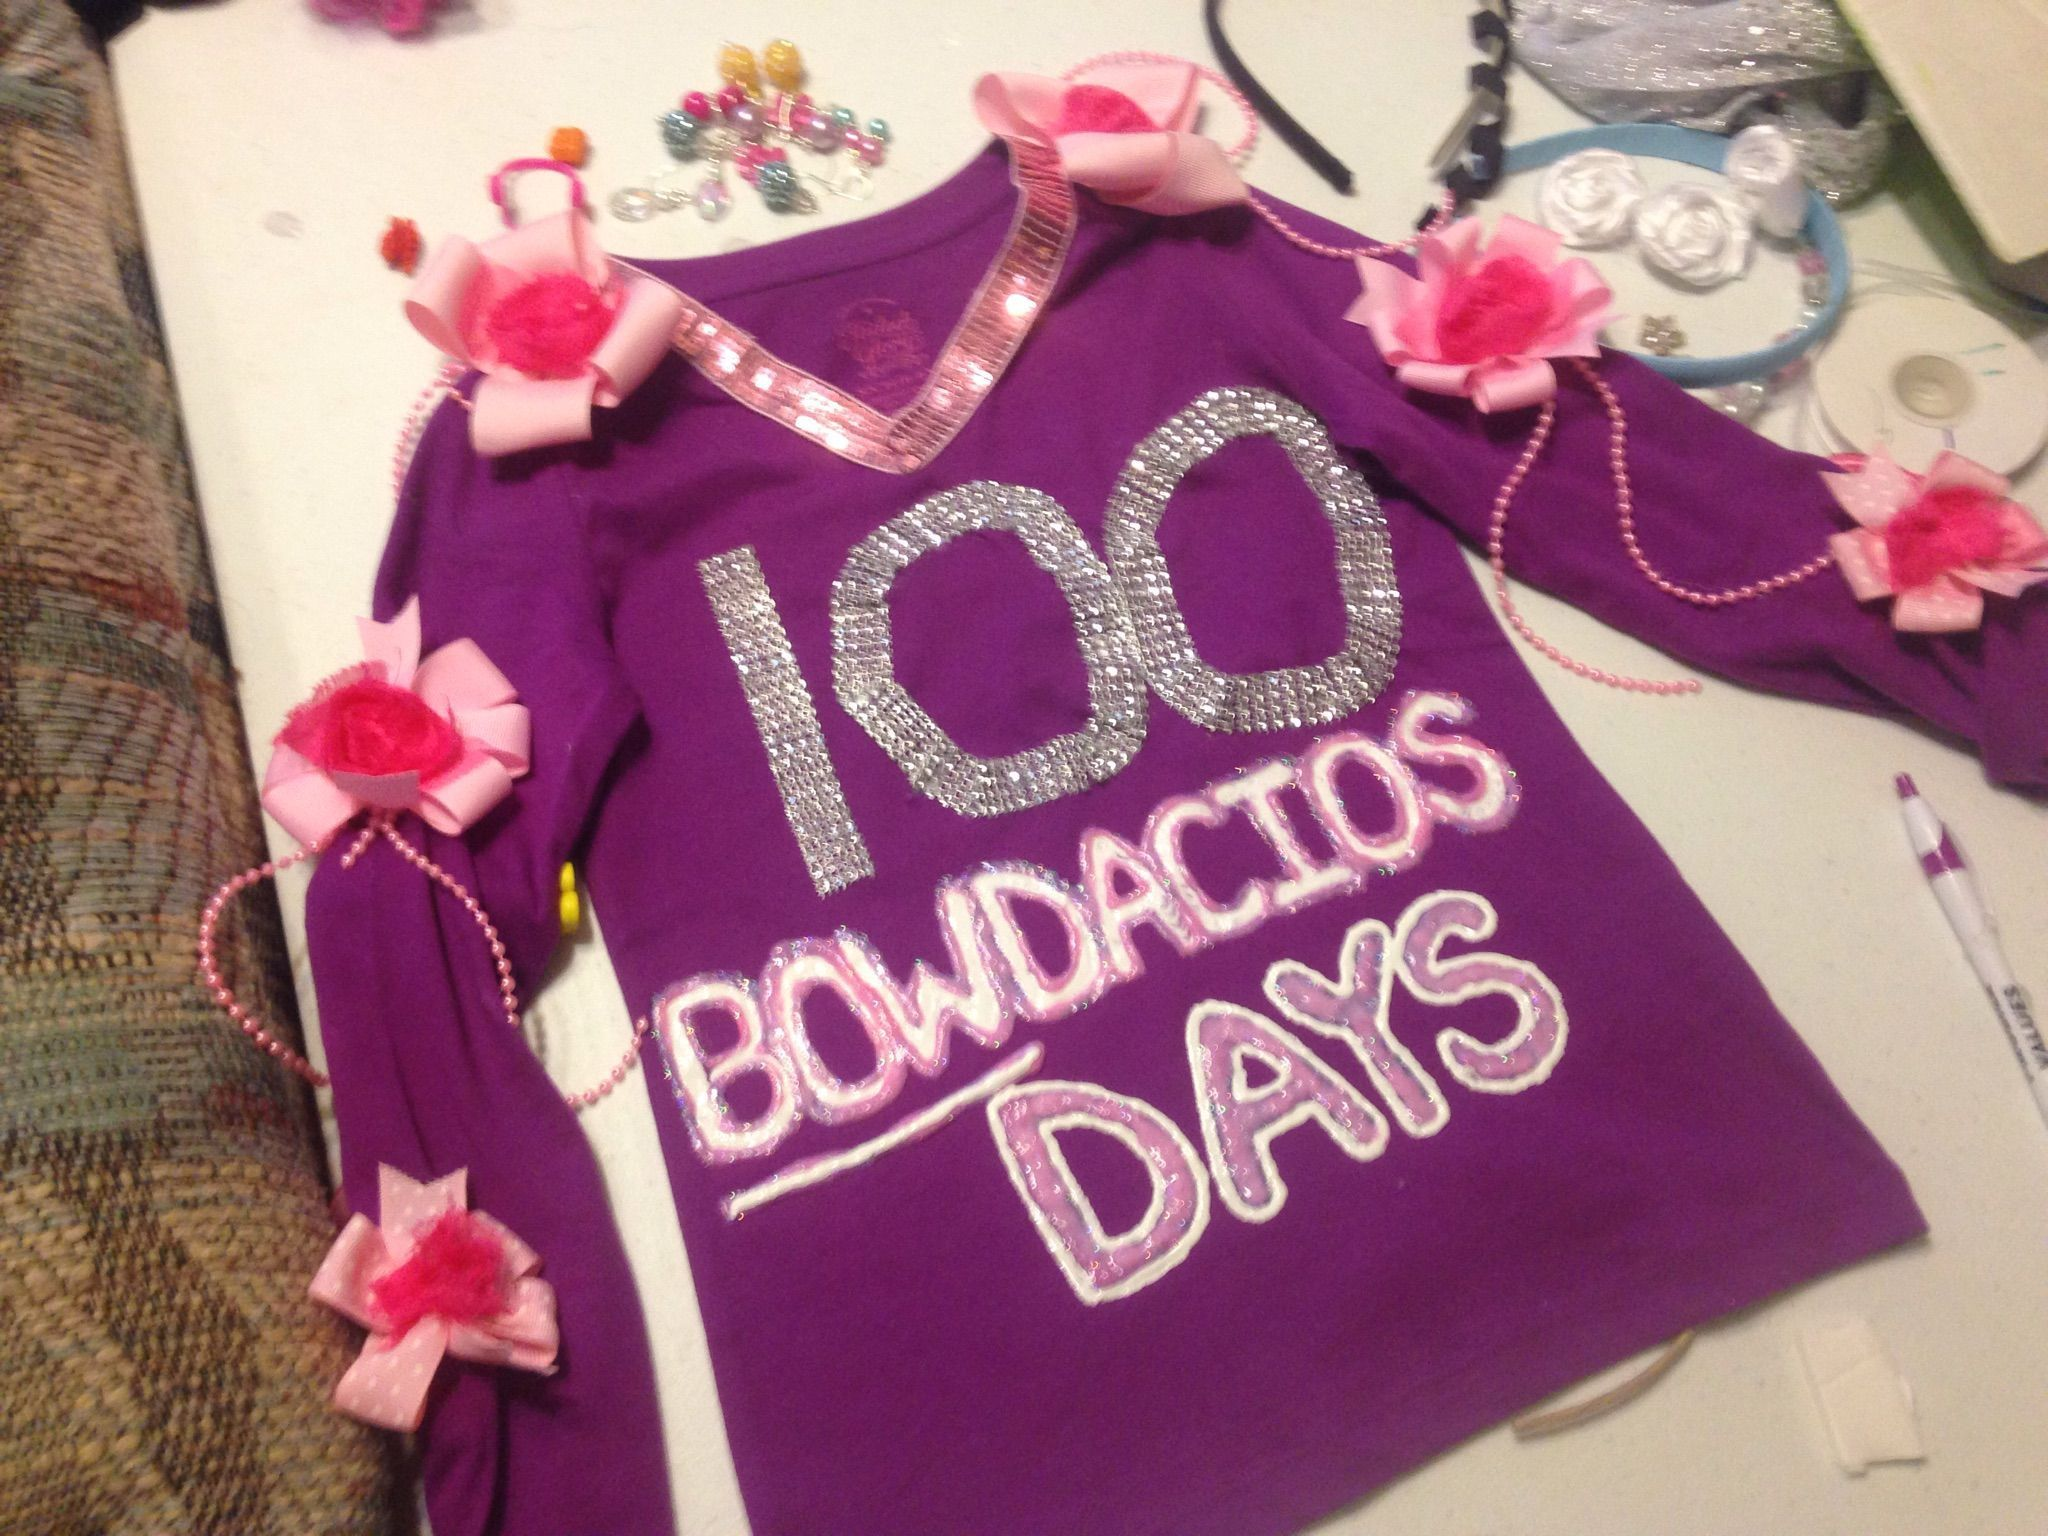 100 days of school, 100th day of school 100 bodacious days shirt. (see other pic for wrap around